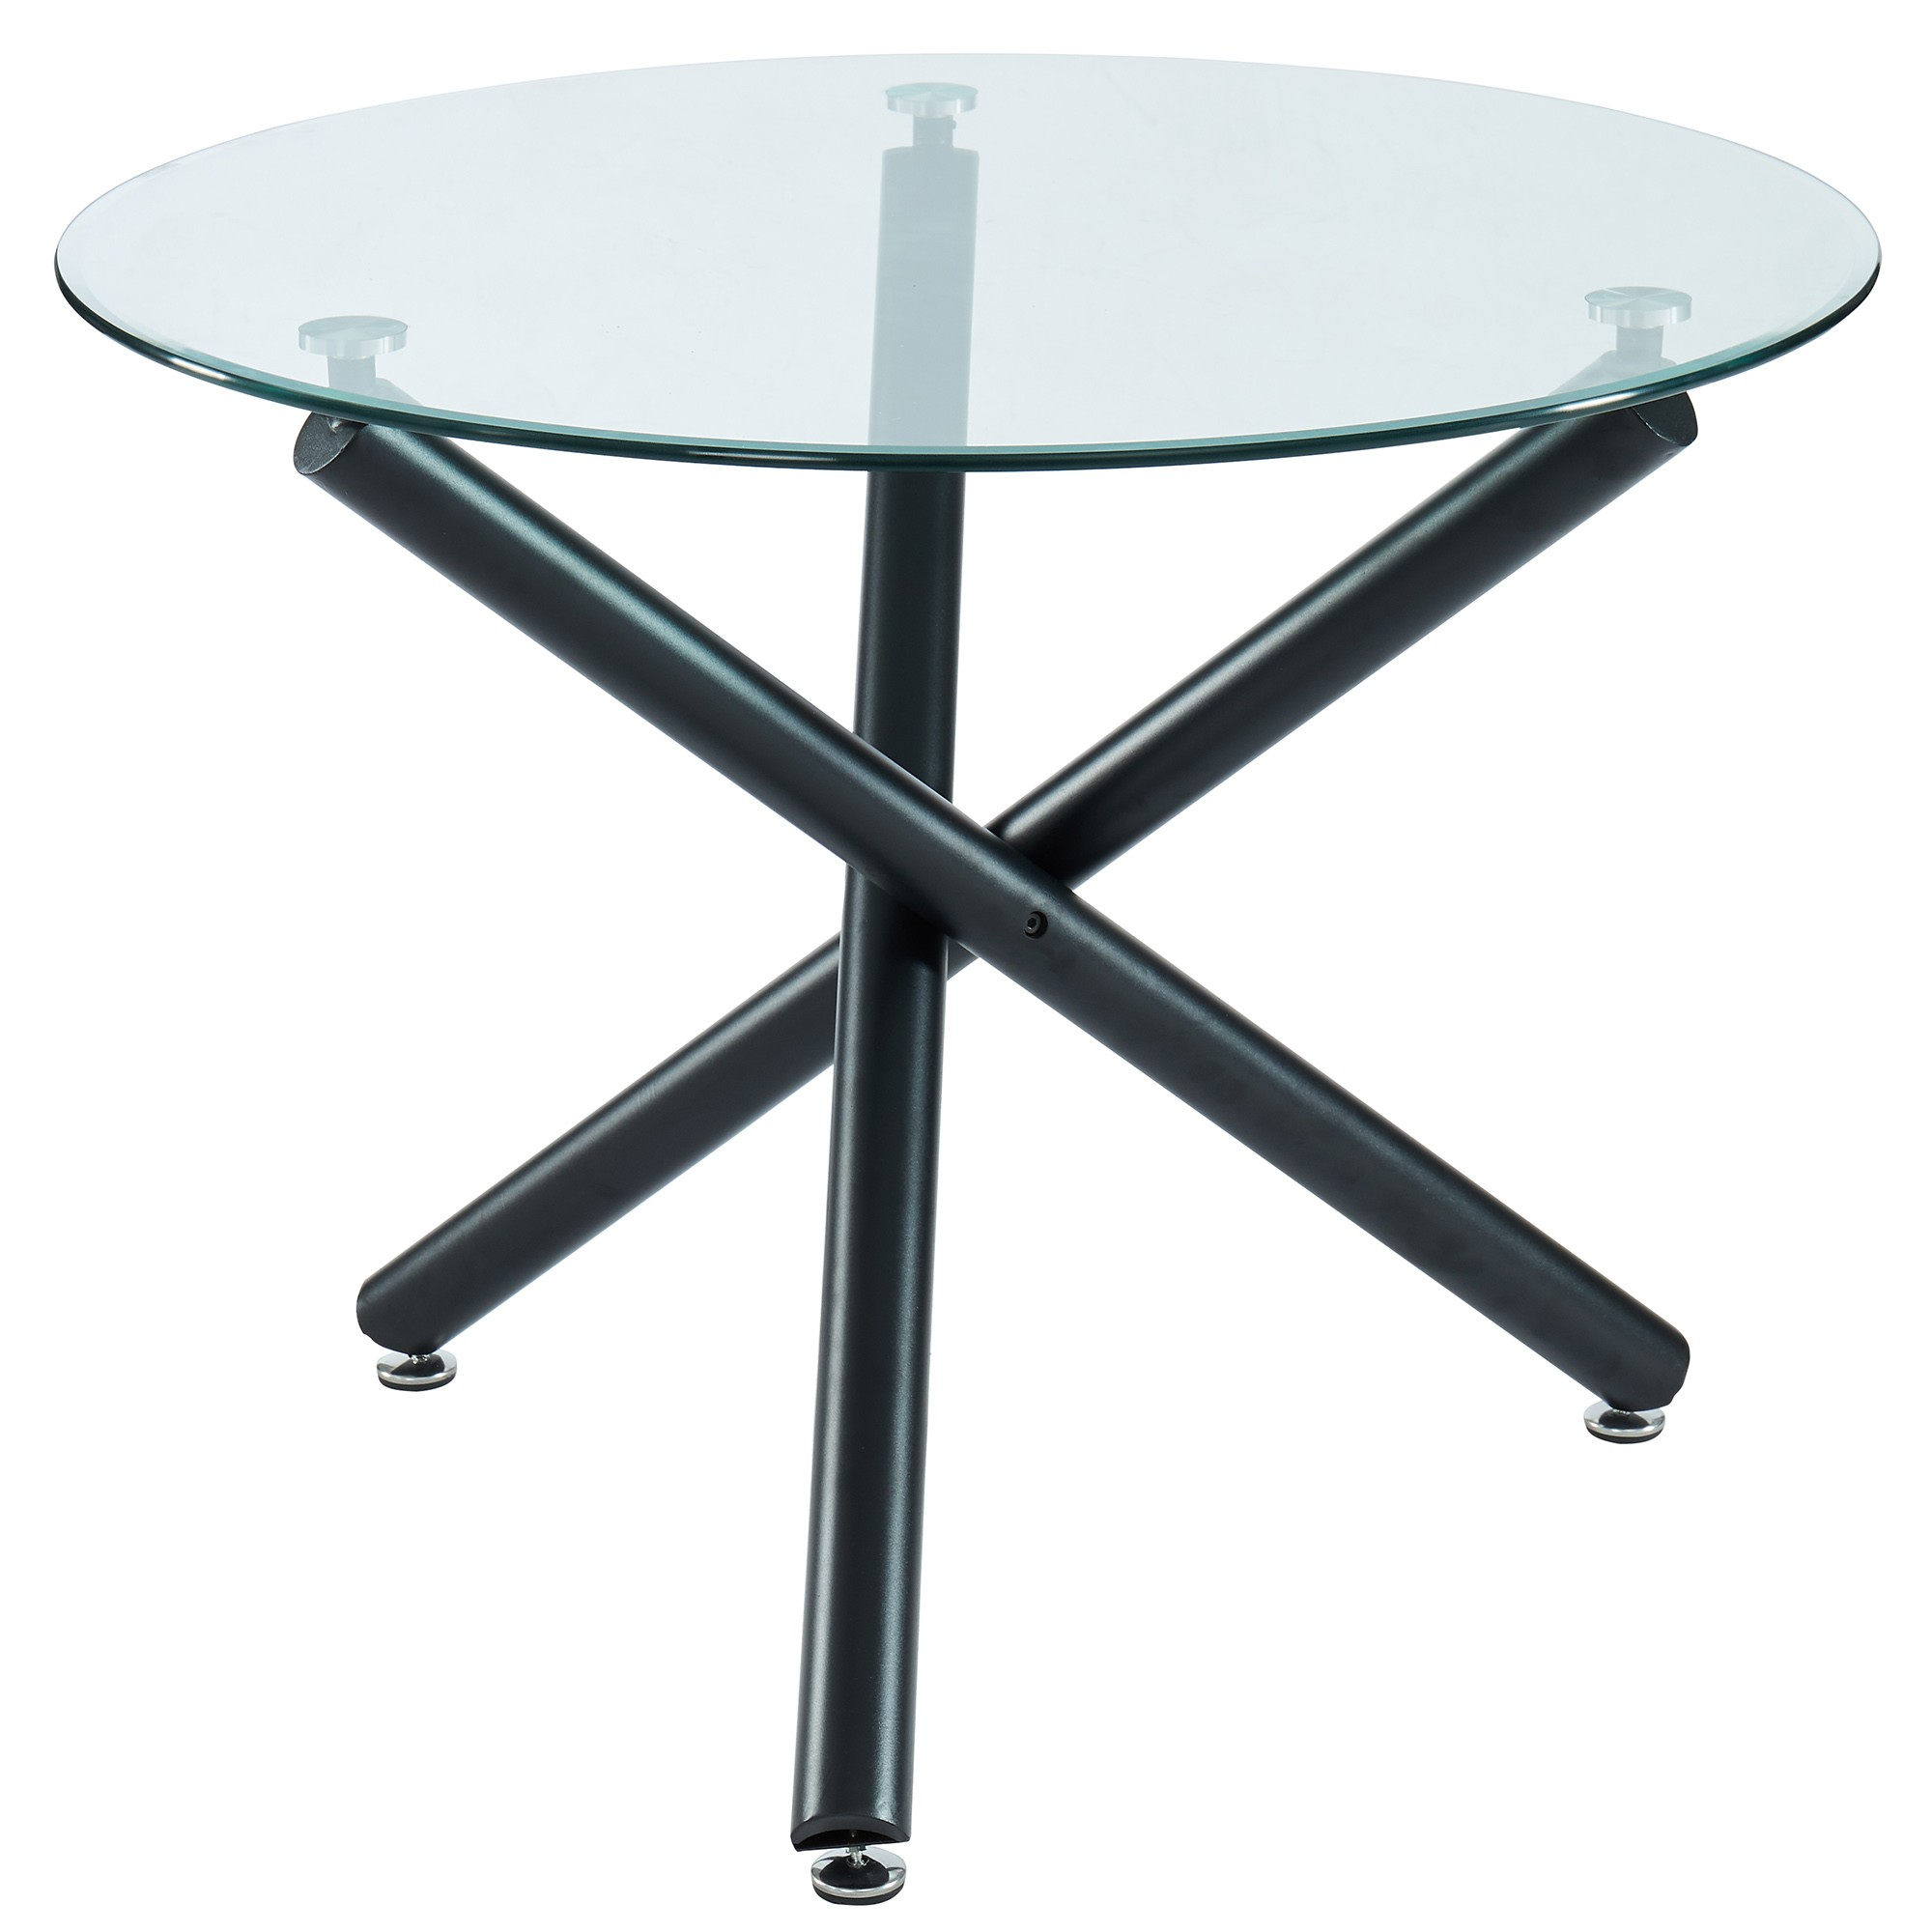 Picture of: Suzette 40 Round Dining Table In Black By Worldwide Homefurnishings Inc